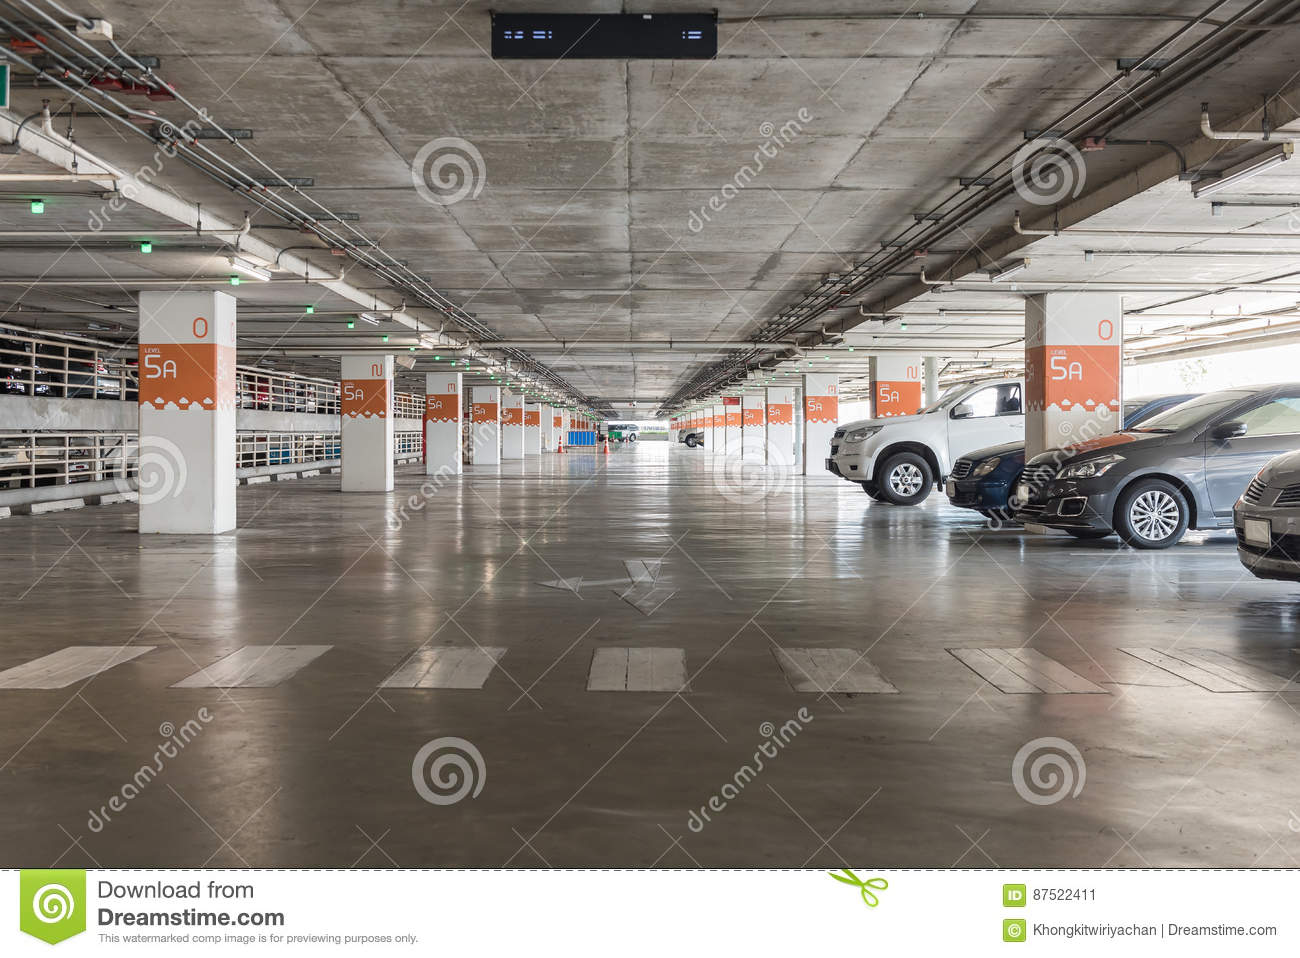 Int rieur de garage avec la voiture et le parking vide for Le vide interieur